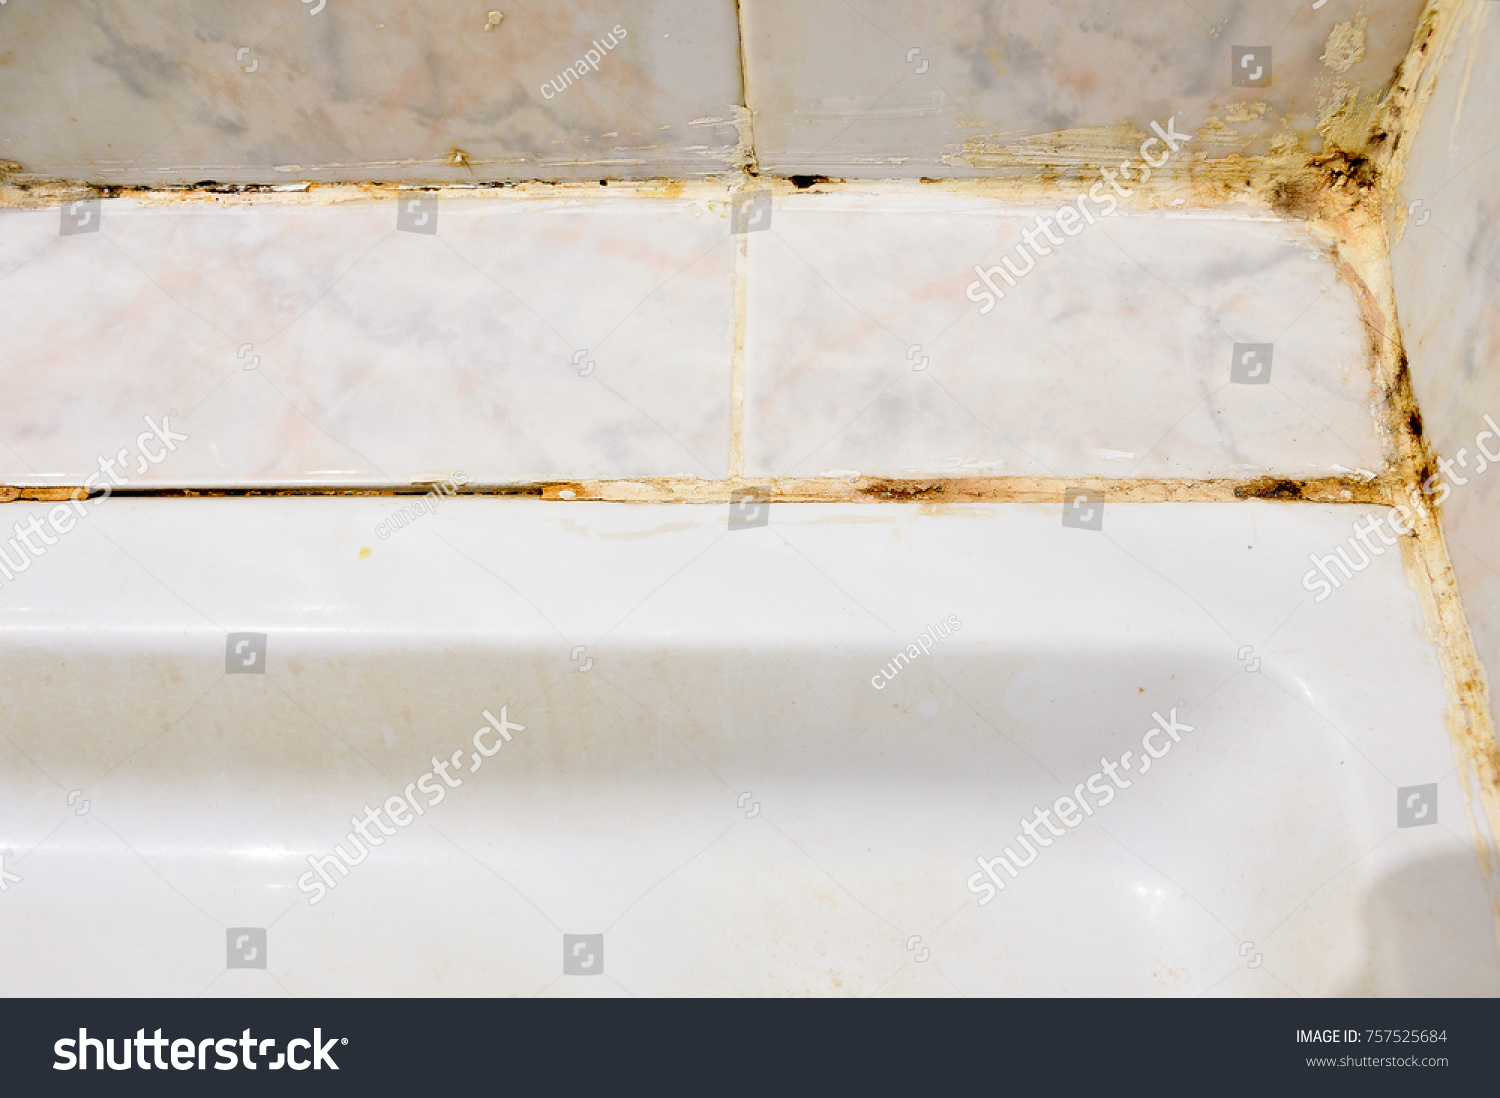 Disgusting Home Shower Bathroom Tile Sealant Stock Photo (Edit Now ...